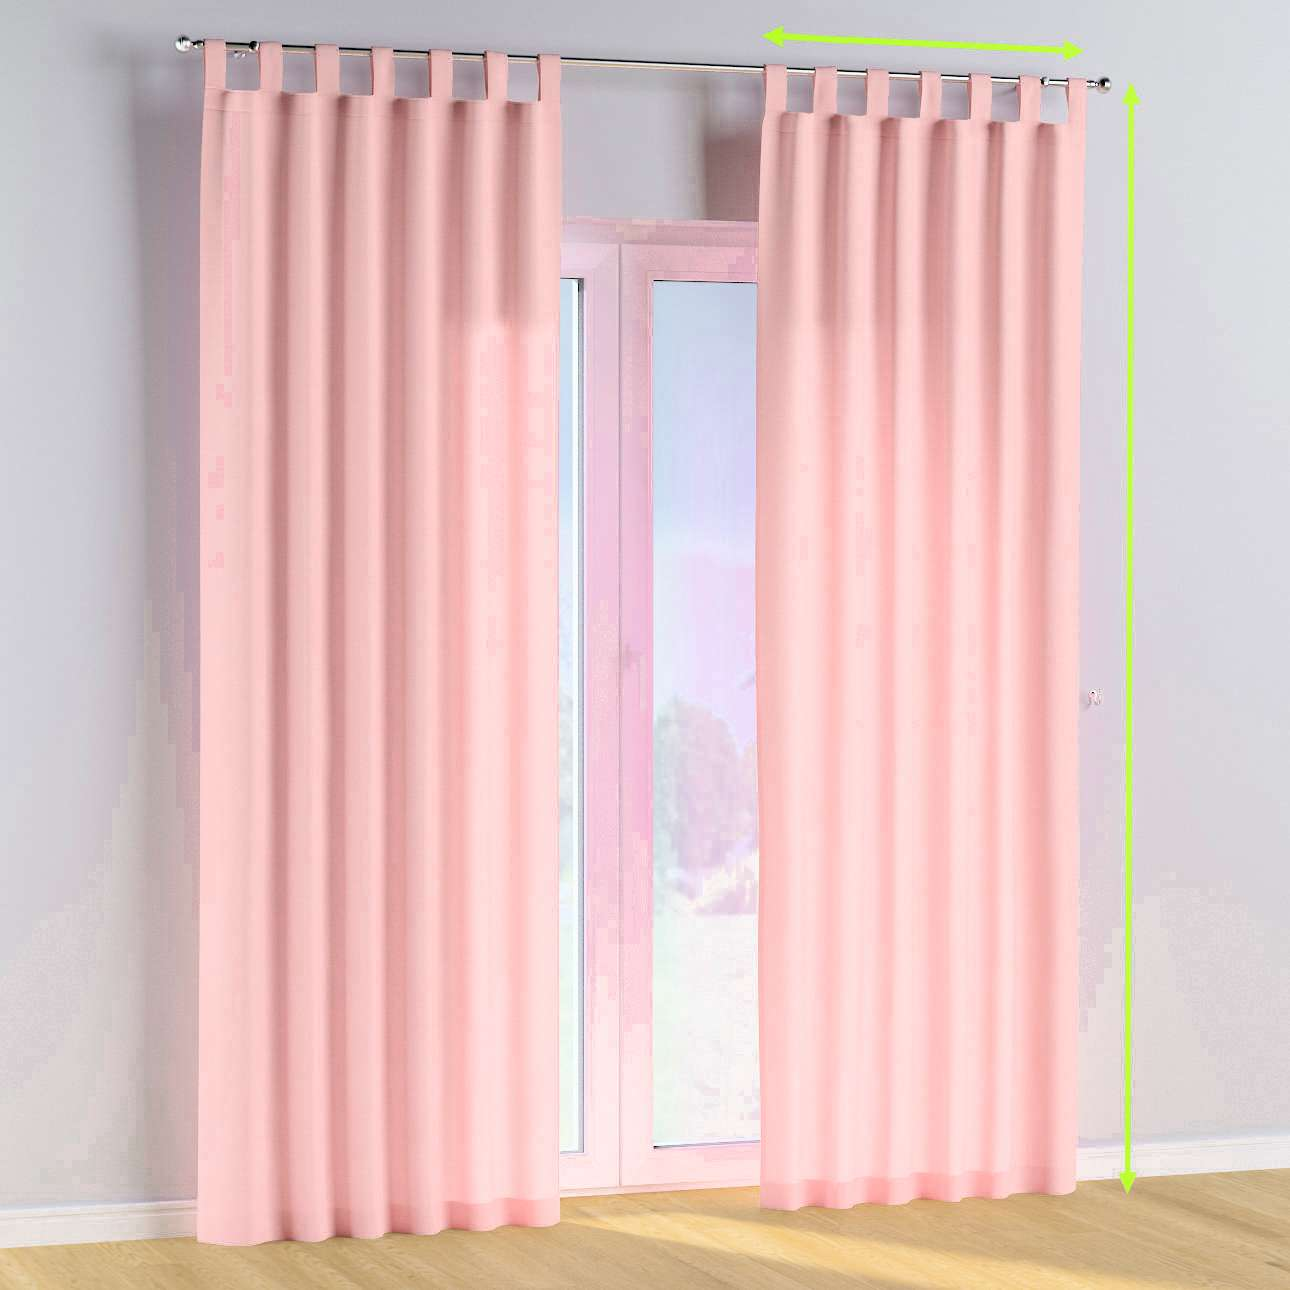 Tab top curtains in collection Happiness, fabric: 133-39